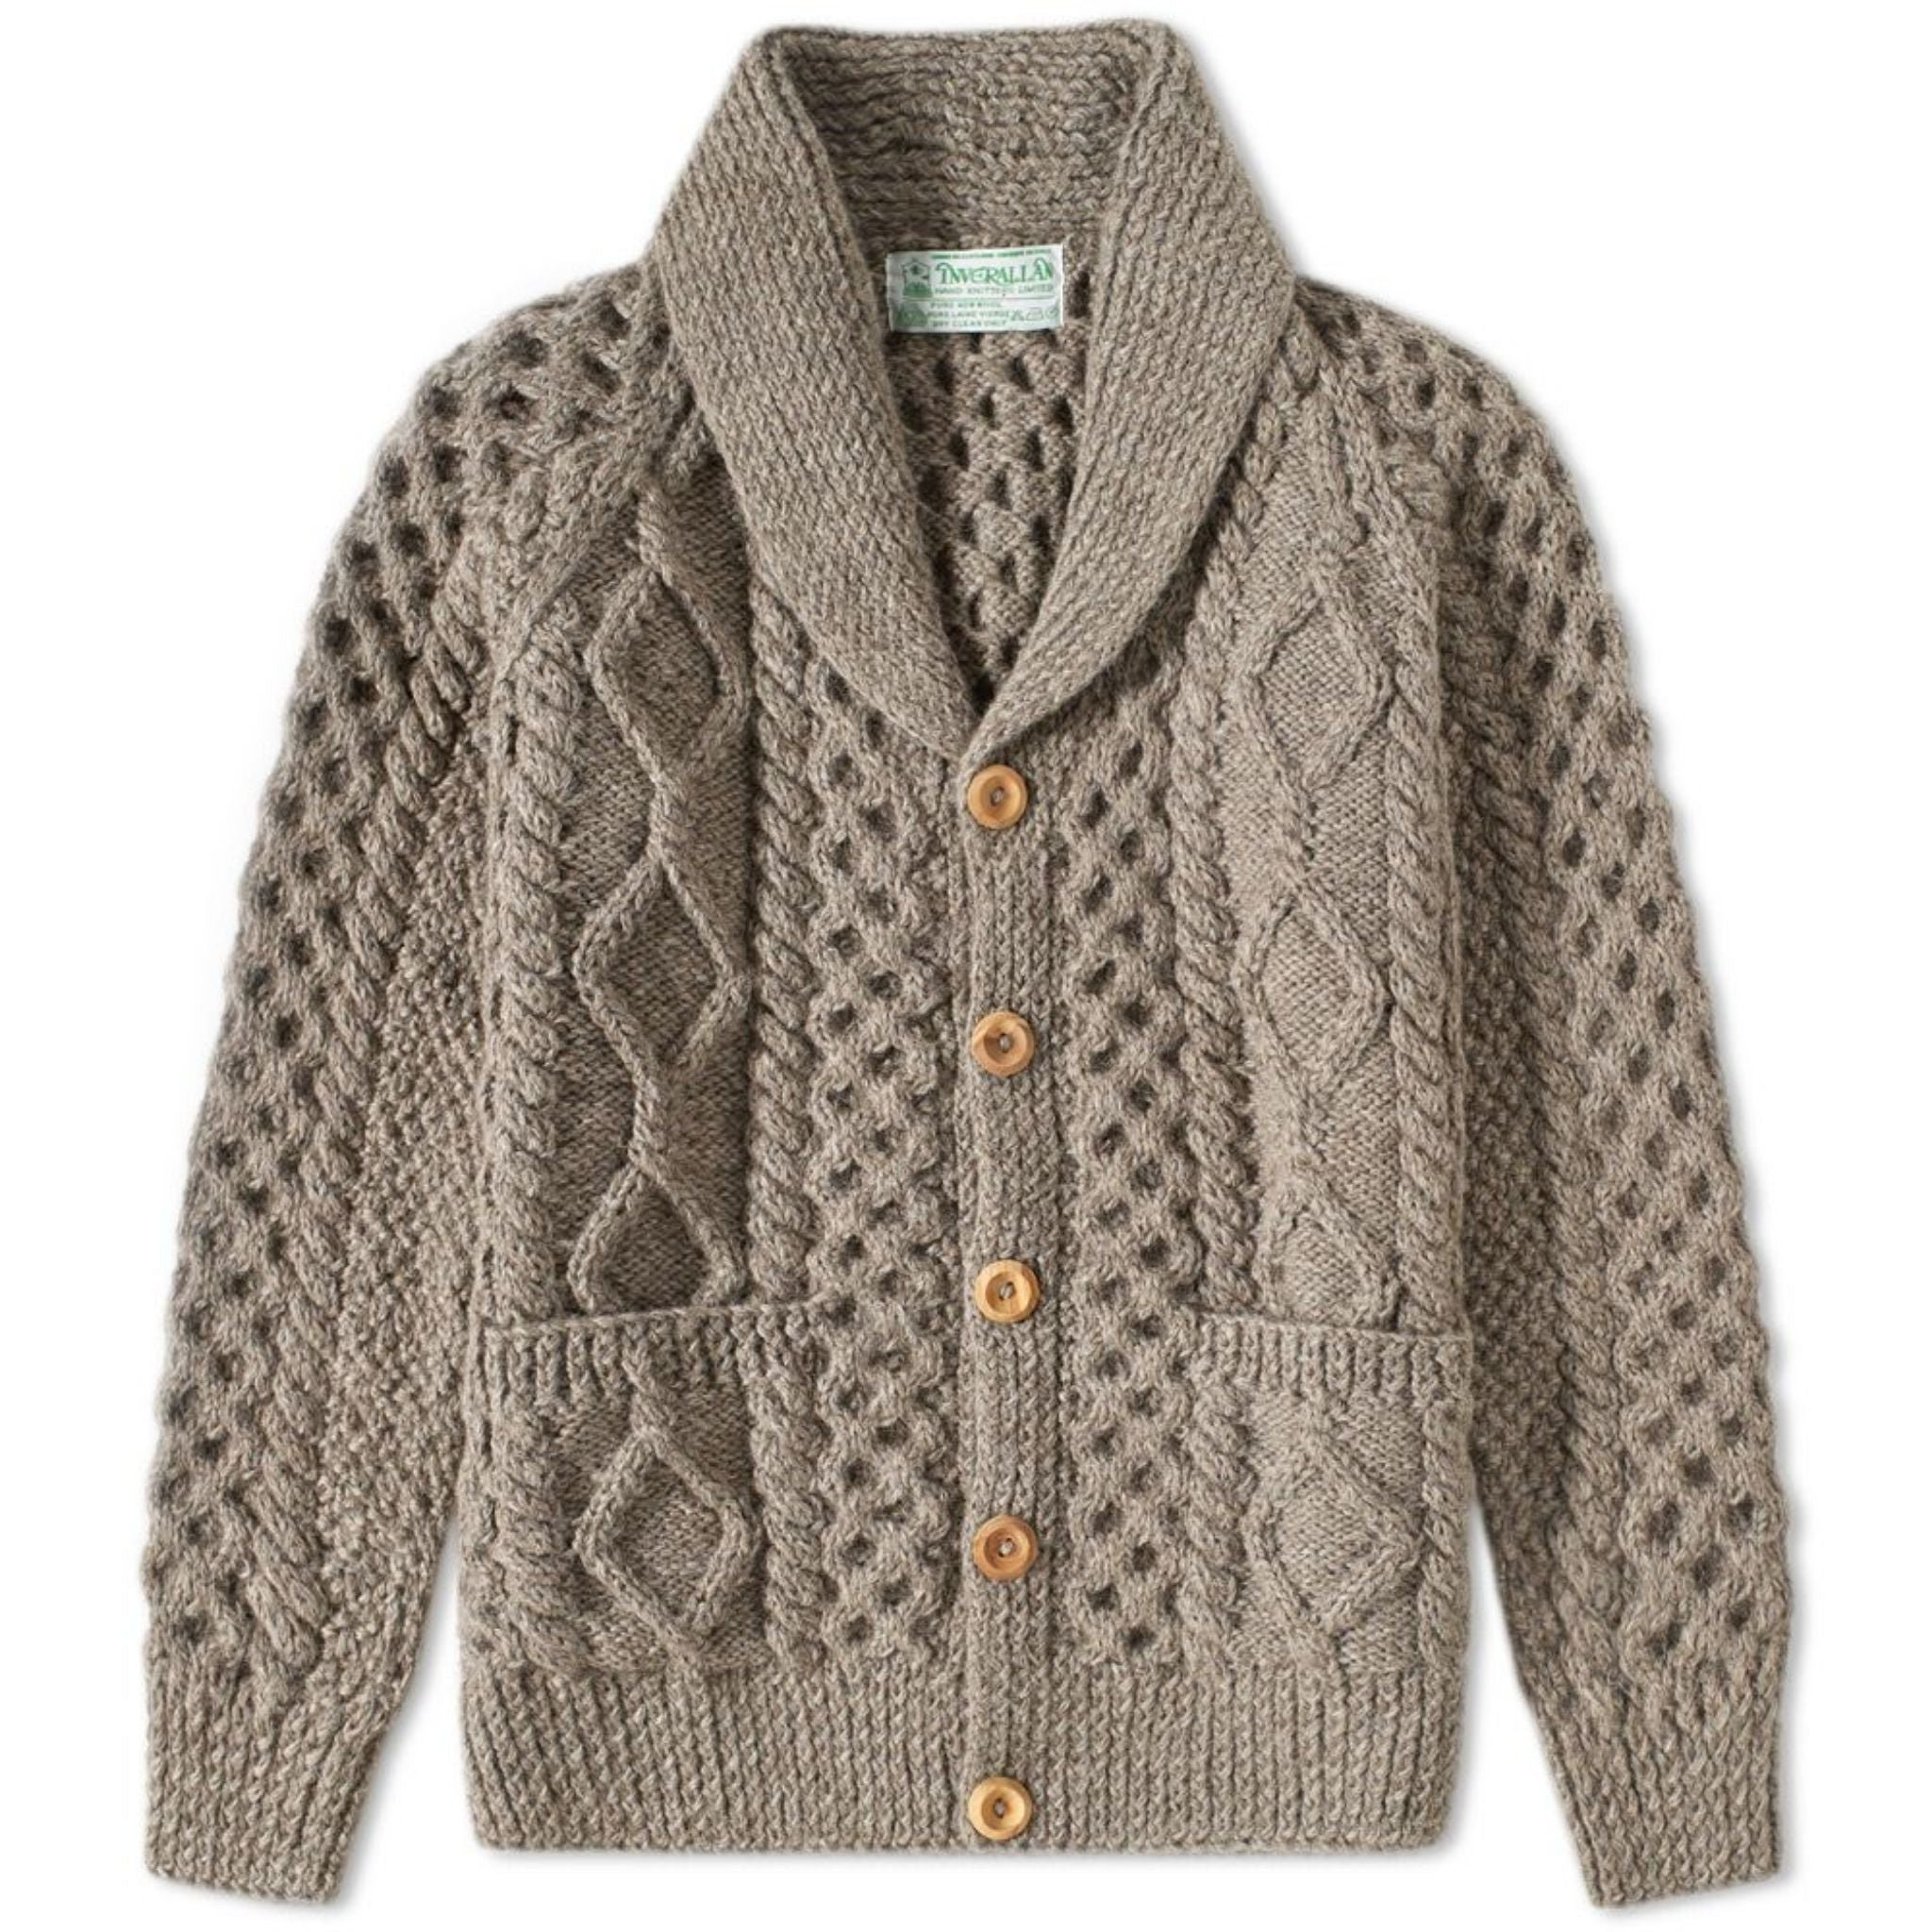 Inverallan gray 6A shawl collar cardigan